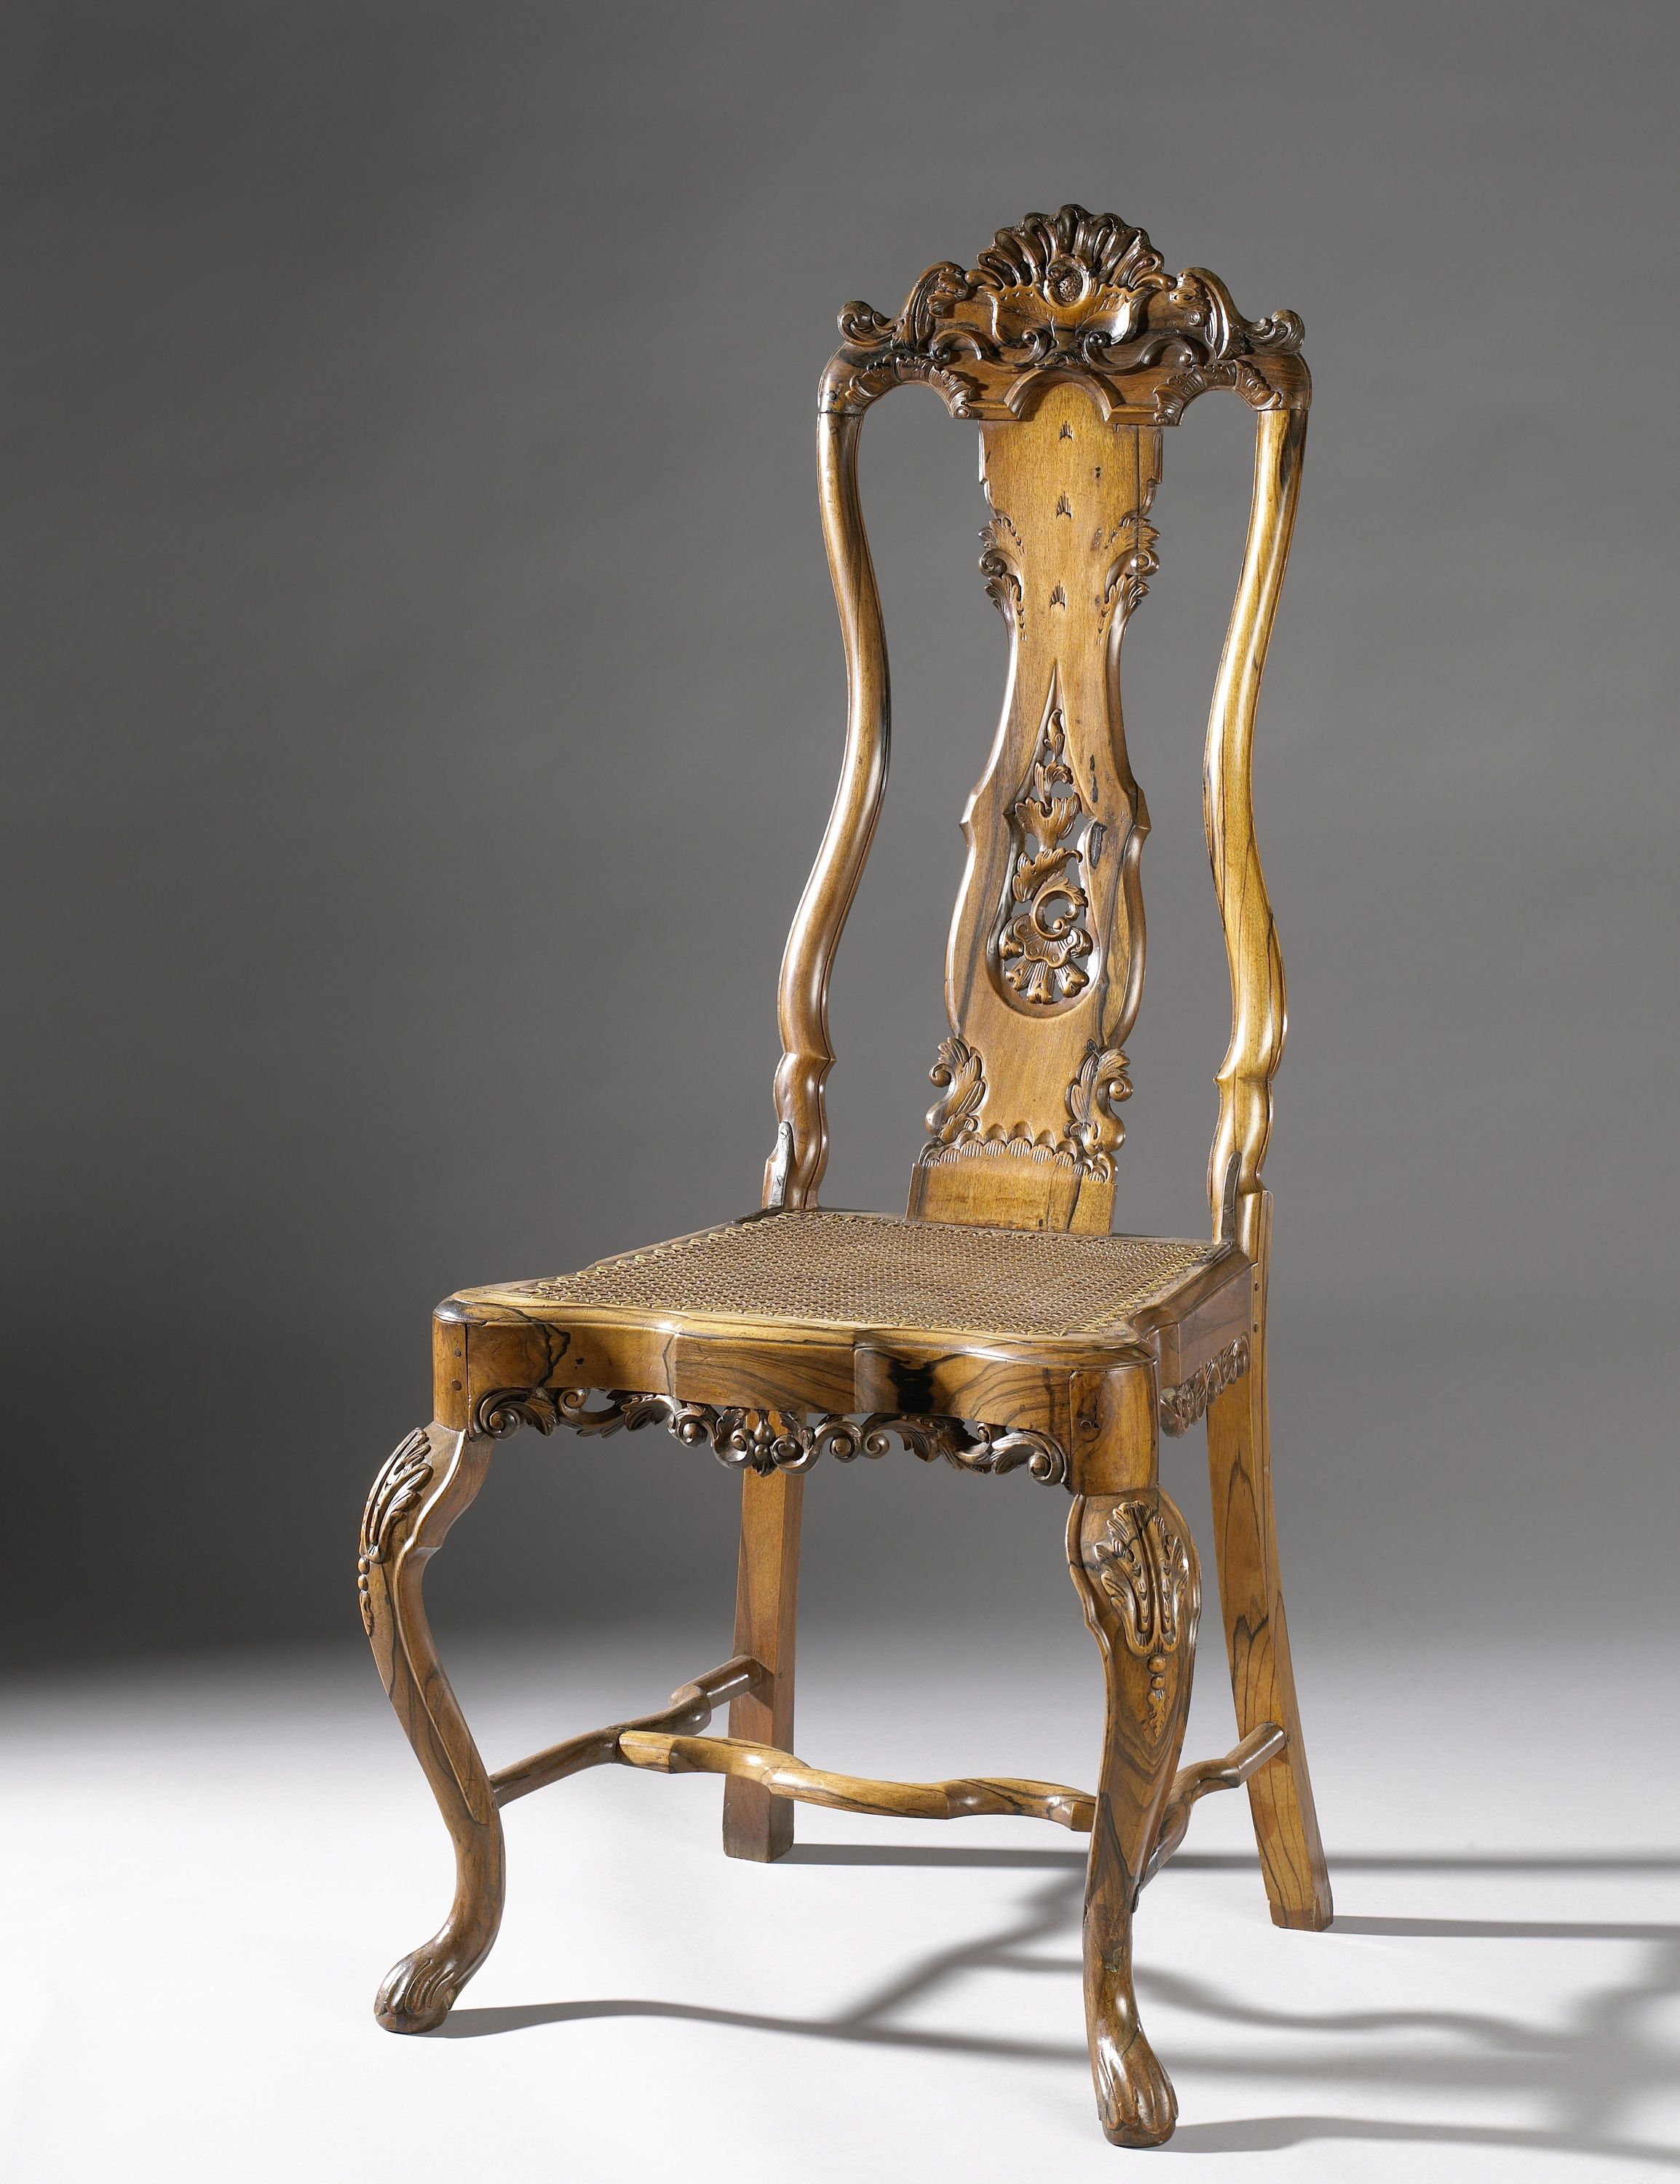 Chair Sri Lanka 1750 Rijksmuseum Public Domain